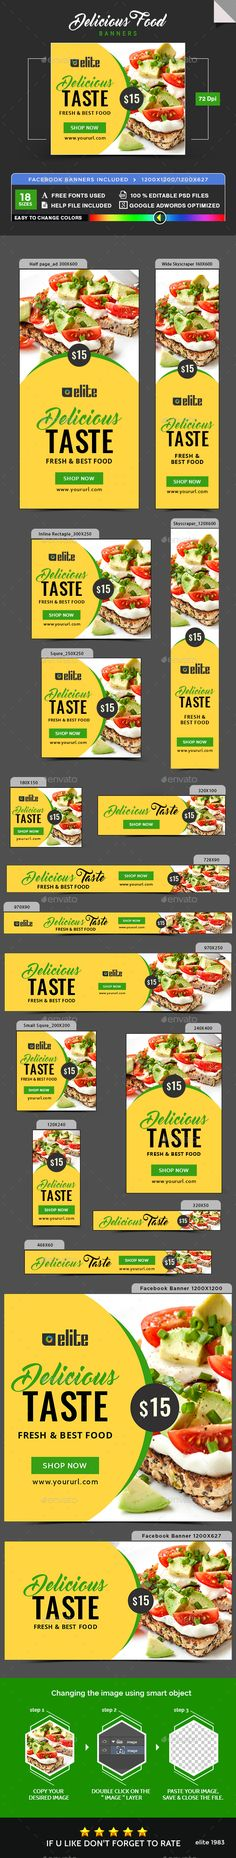 Buy Delicious Food Banners by Hyov on GraphicRiver. Promote your Products and services with this great looking Banner Set. Seafood Lasagna Recipes, Seafood Casserole Recipes, Party Food 21st, Food Banner, Healthy Salmon Recipes, Banner Template, Food Design, Delicious Food, Fun Gif